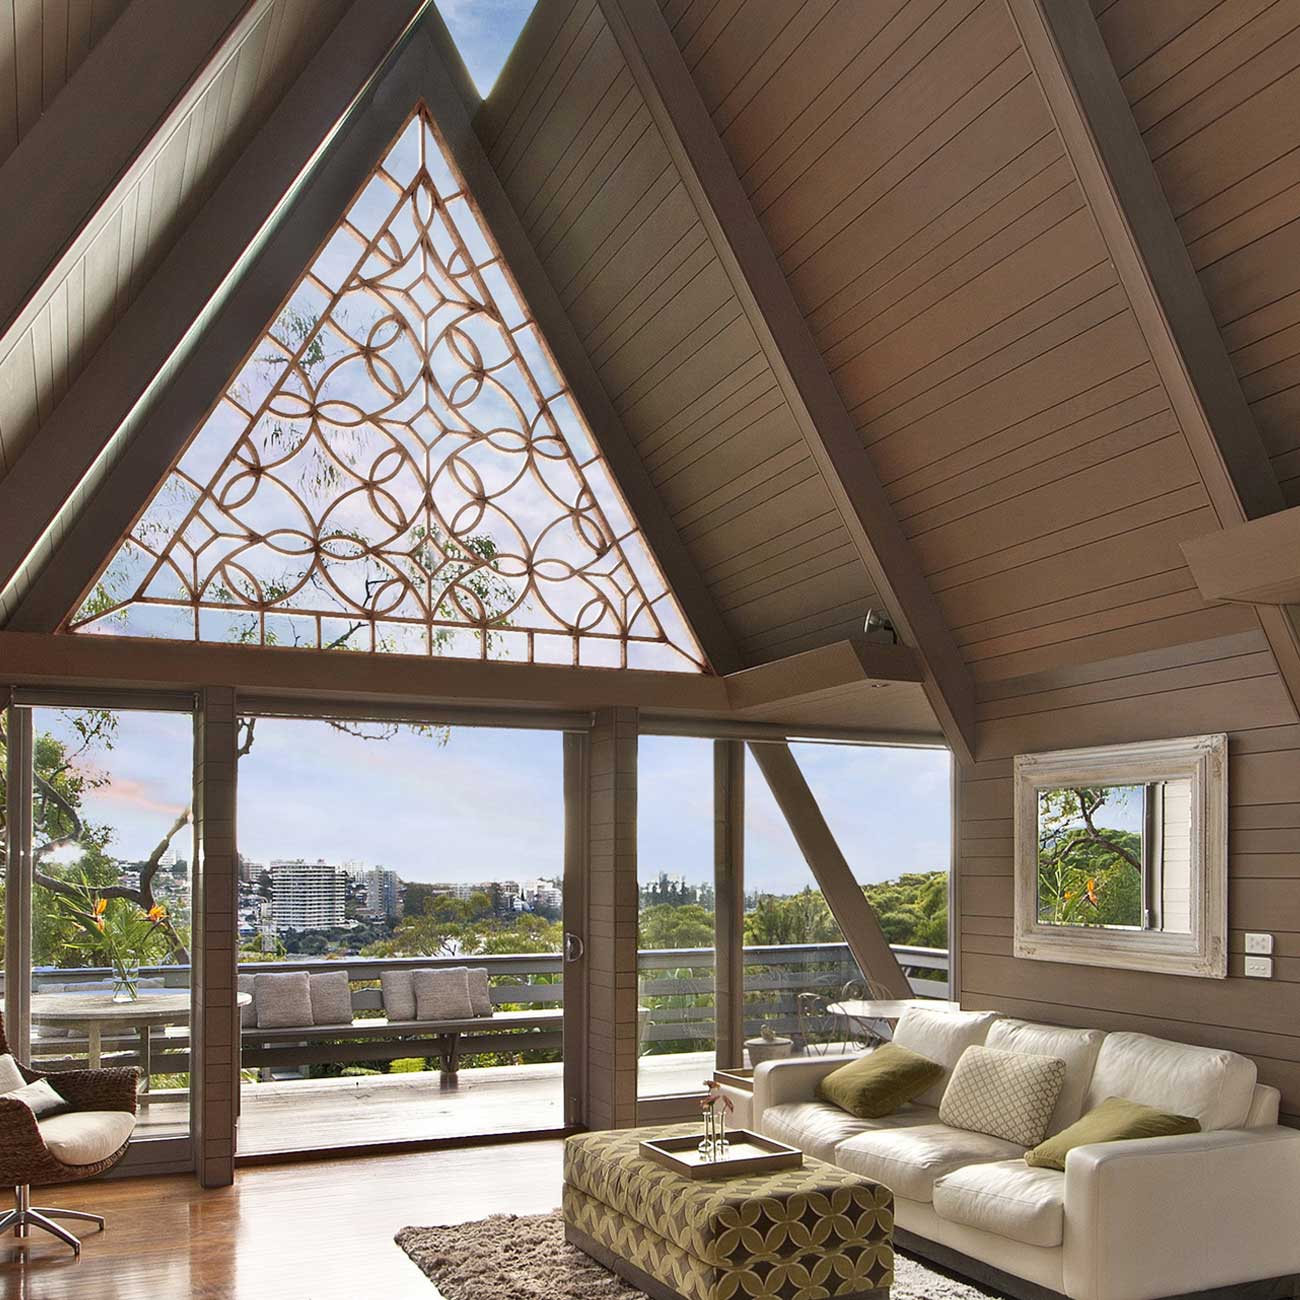 Living space with slanting roof tops